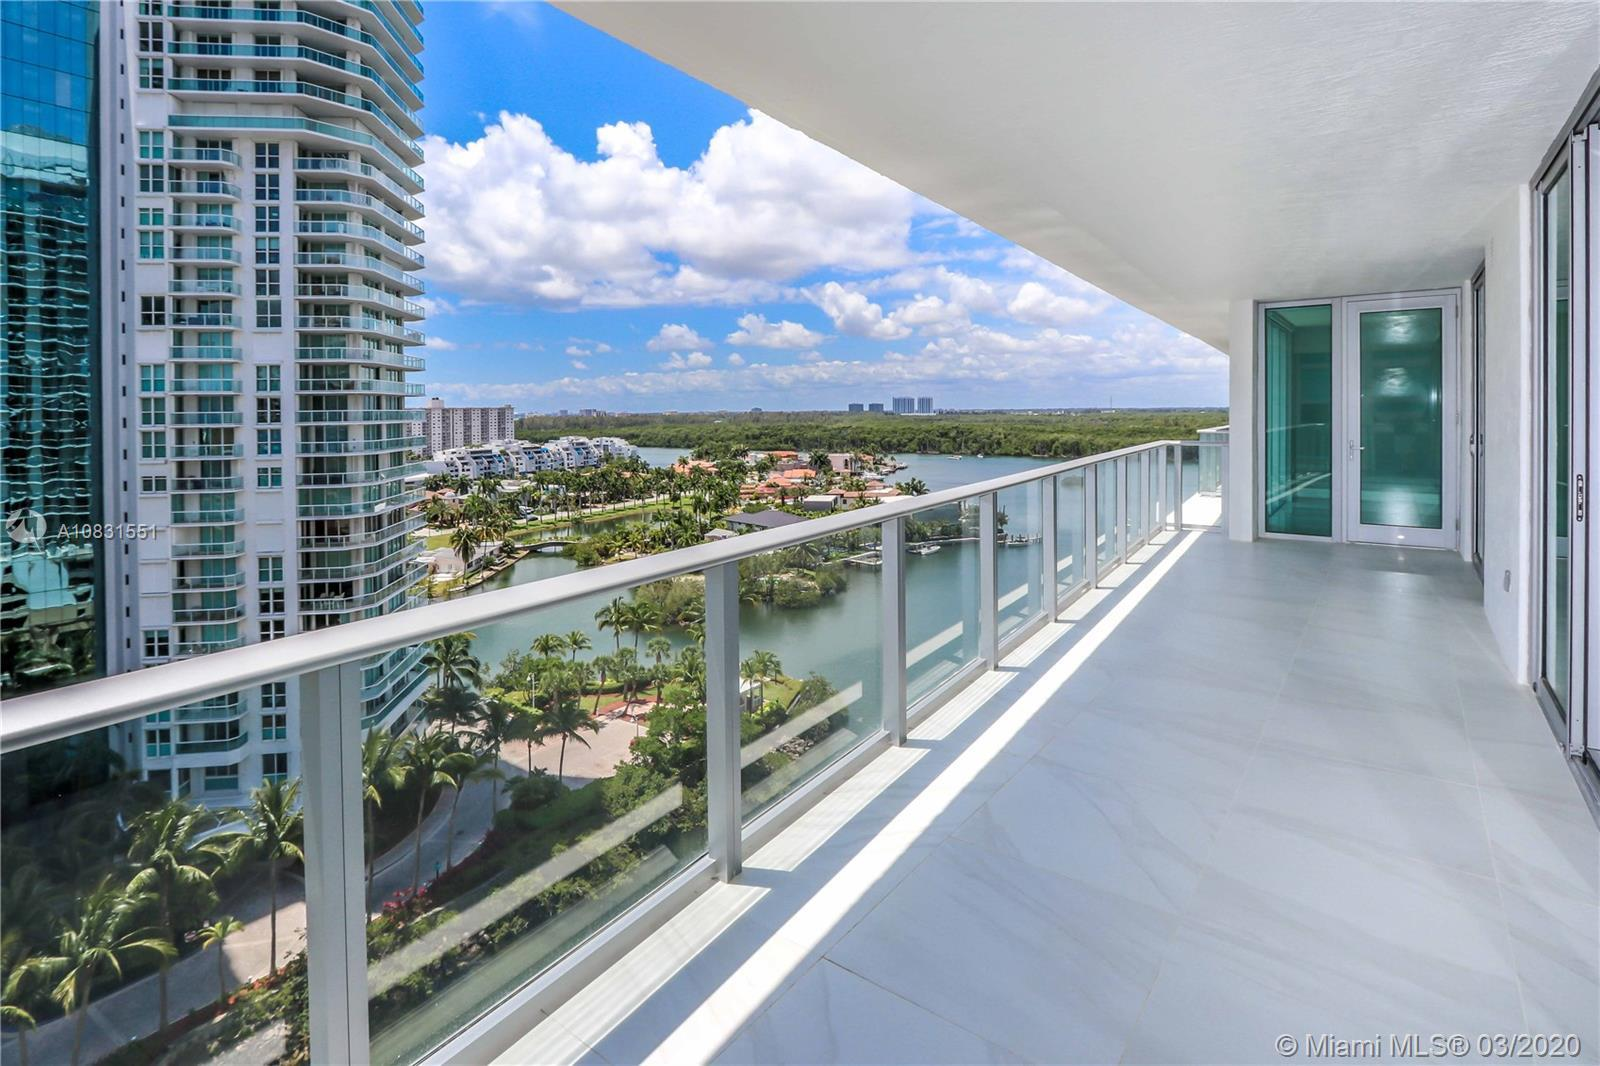 Best line of the building, facing south east with views to the ocean and the bay, a corner unit with